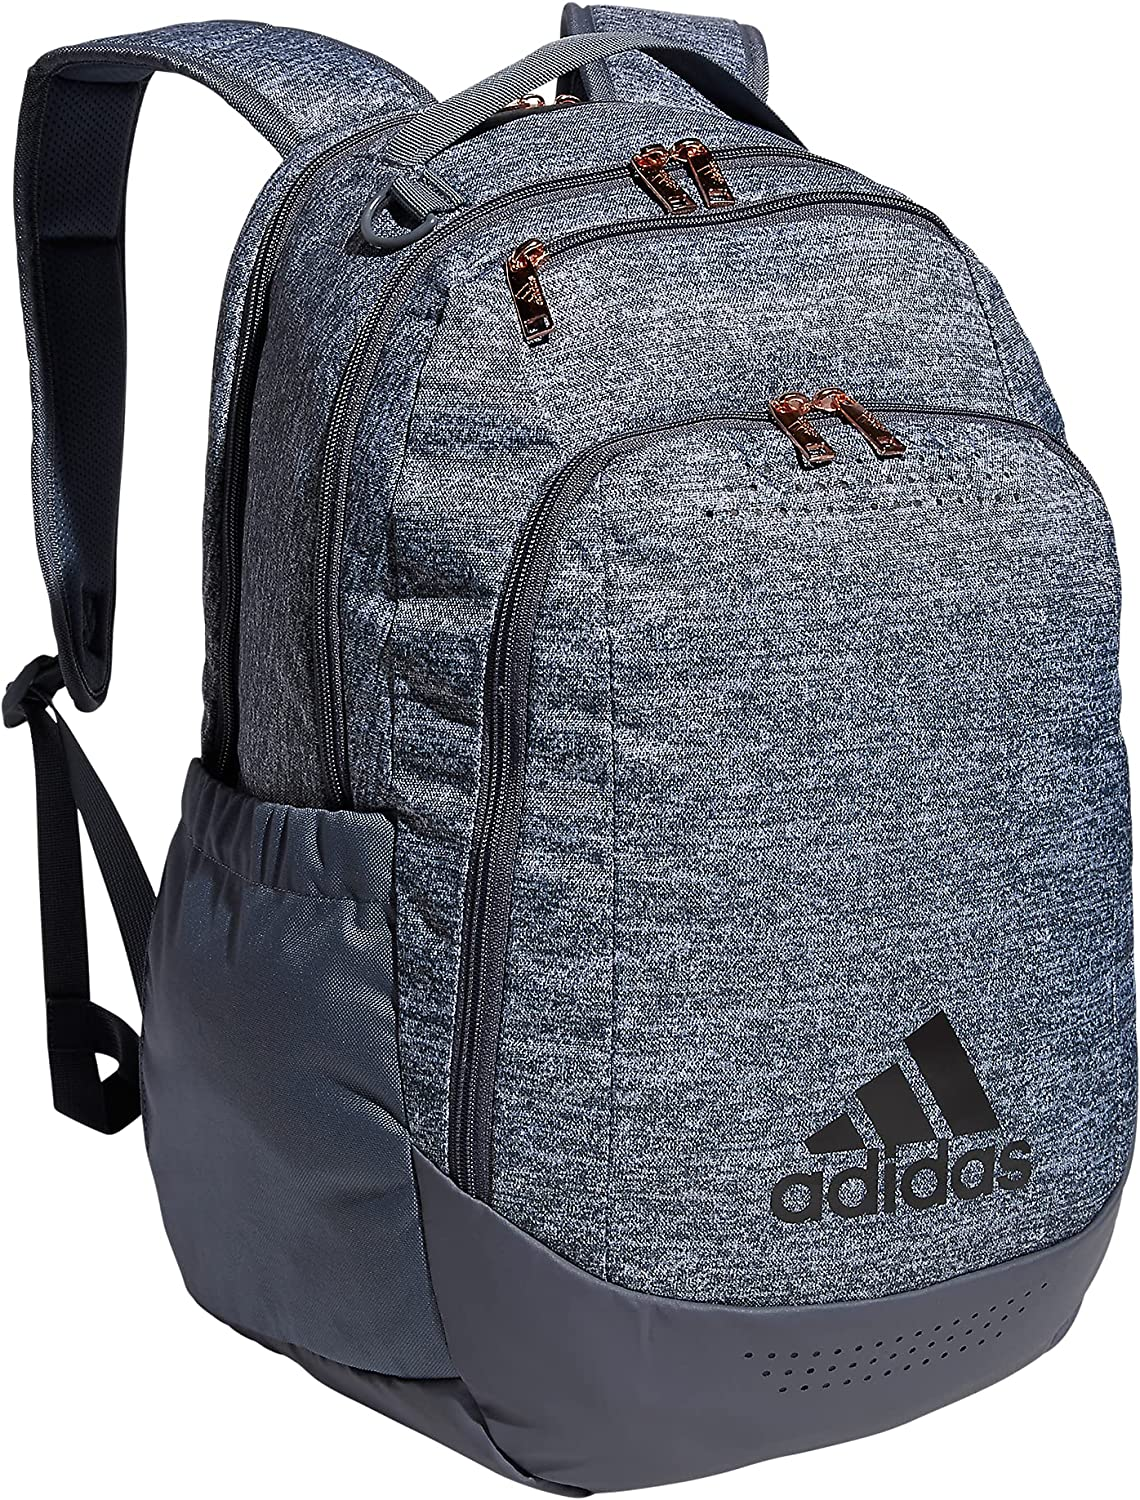 adidas Defender Team Sports Backpack, Jersey Onix Grey/Onix Grey/Rose Gold, One Size